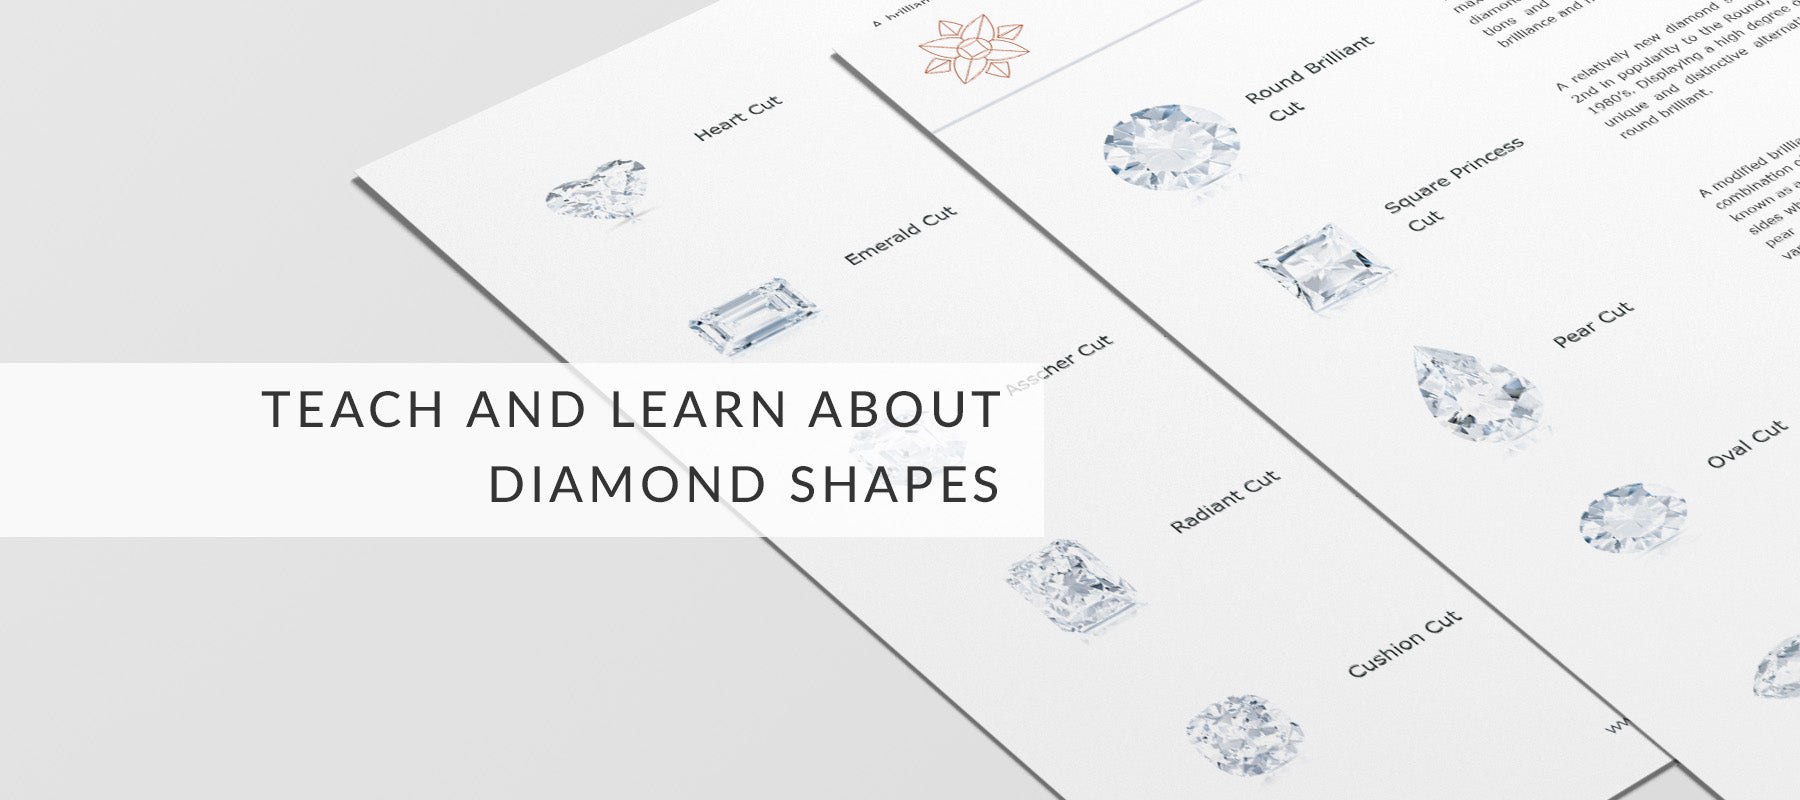 diamond cuts and shapes for education and learning